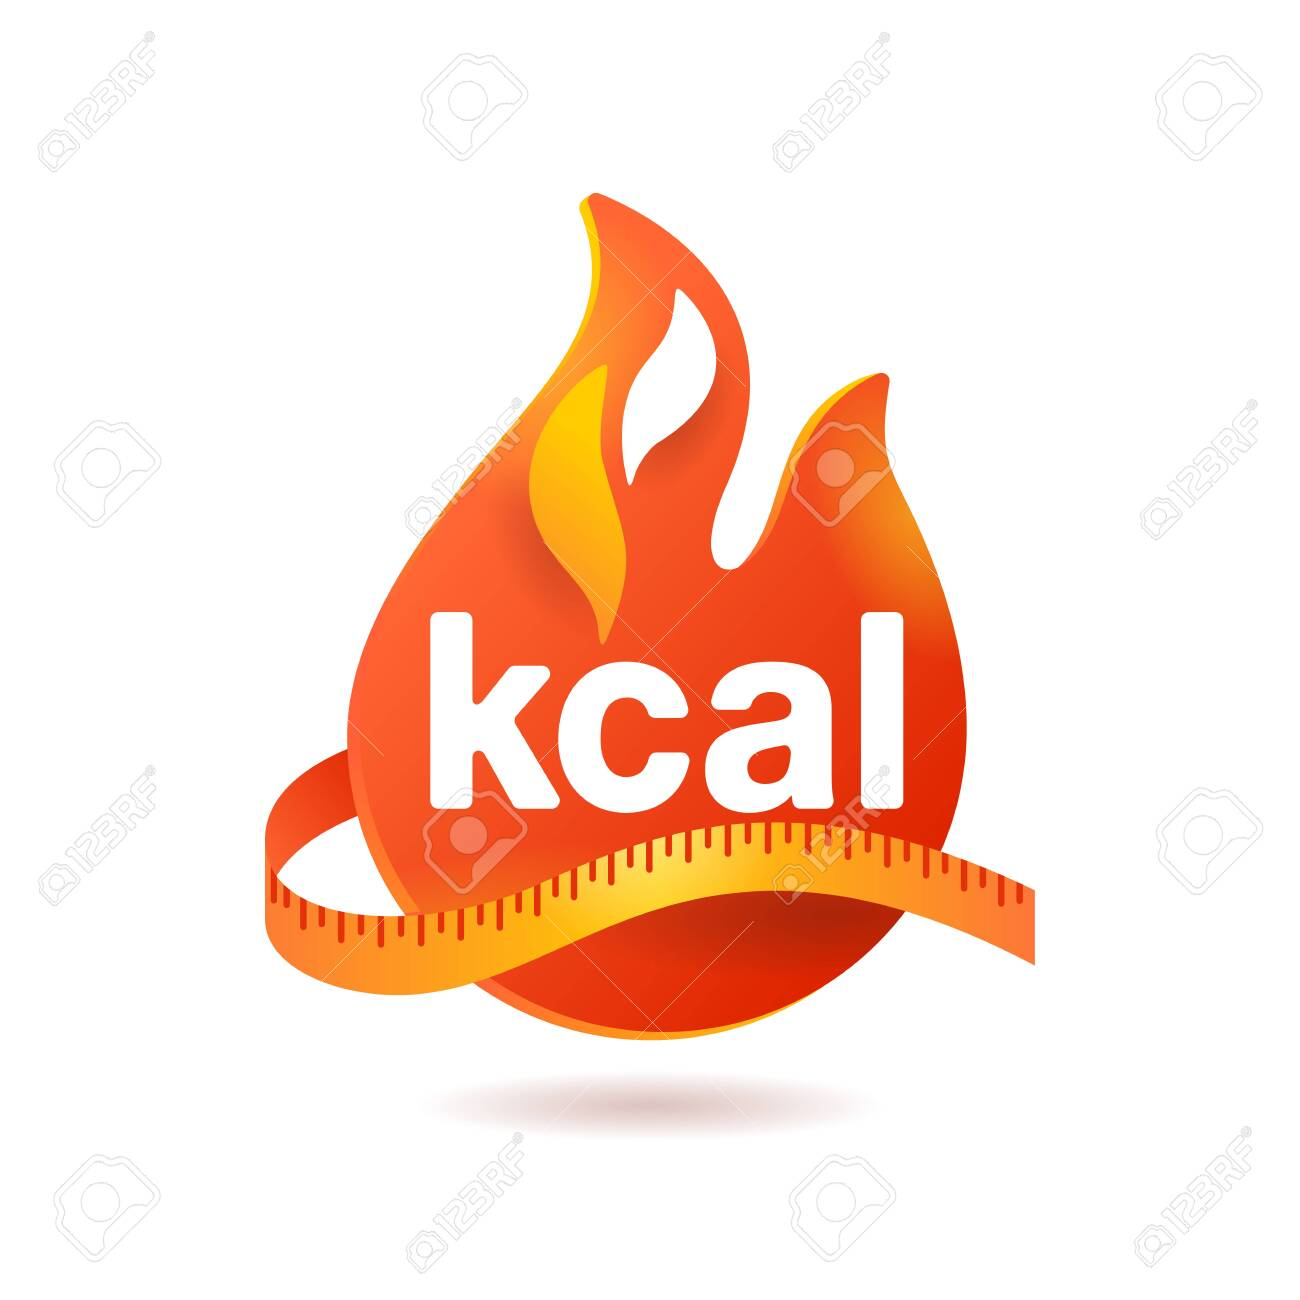 kcal icon - kilocalorie symbolic emblem for food products cover designation - fat burning visual - isolated vector element - 153330499